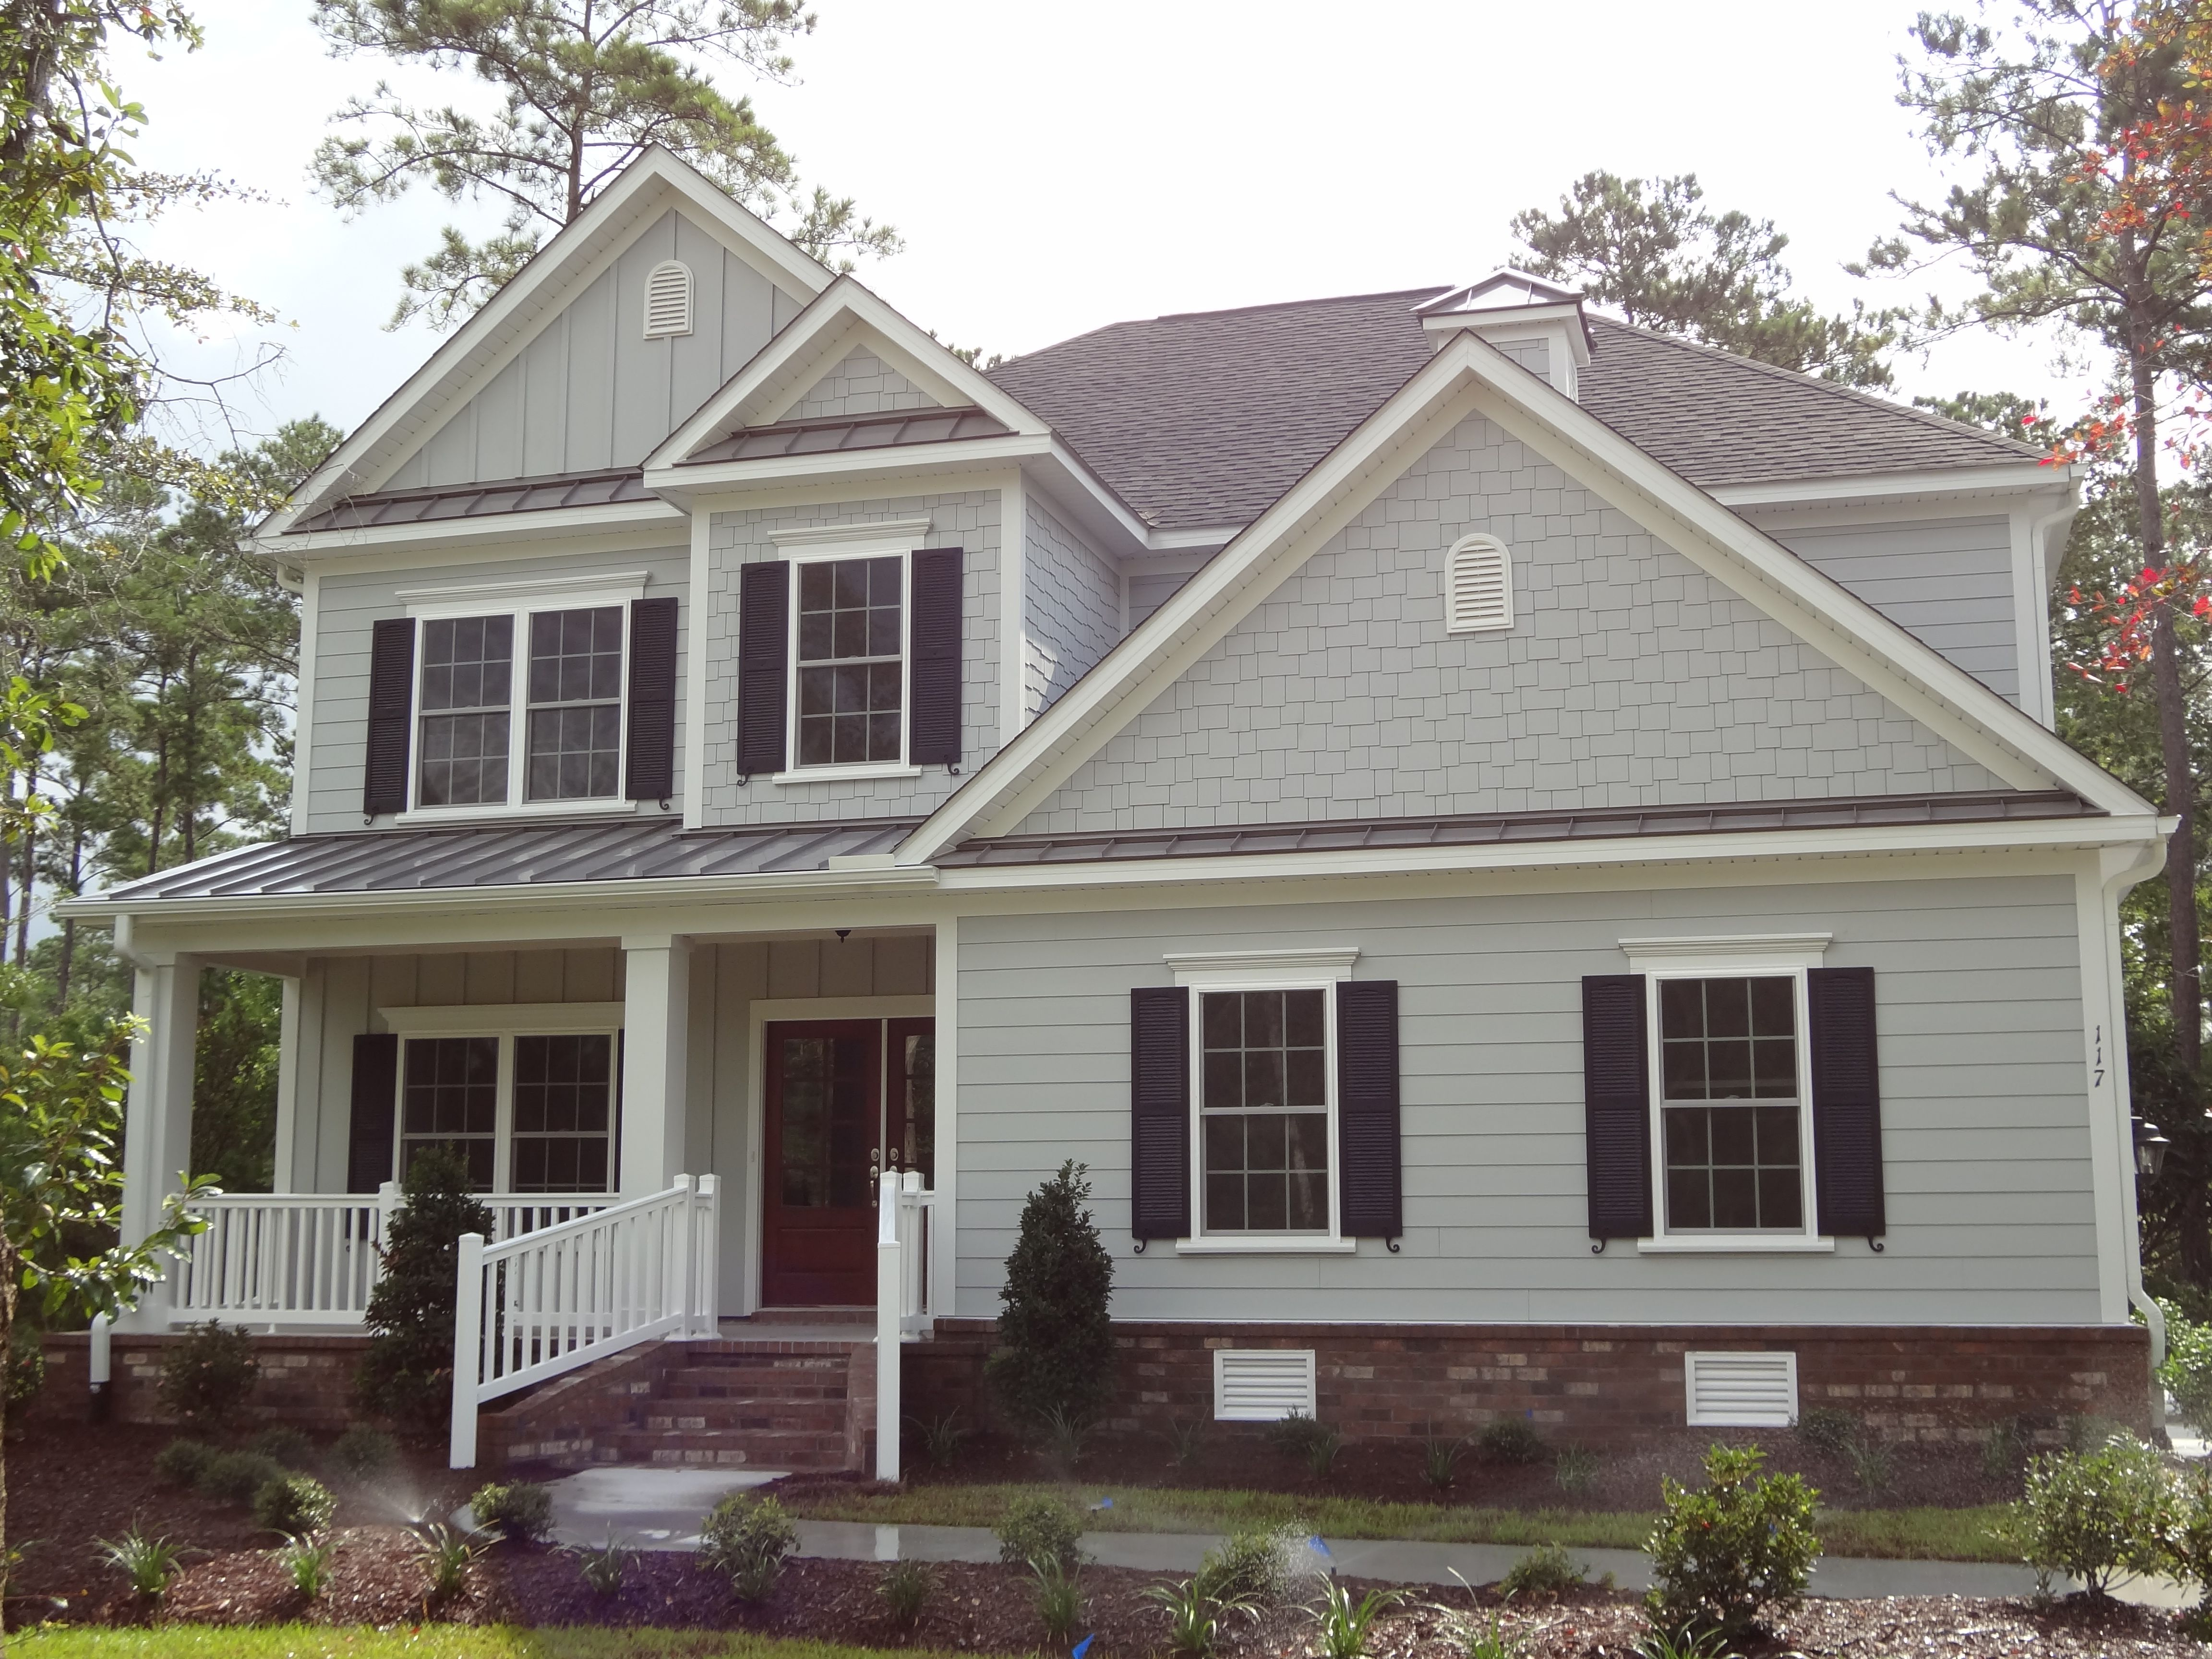 7 Popular Siding Materials To Consider: James Hardie ColorPlus Lap, Board And Batten, And Shake